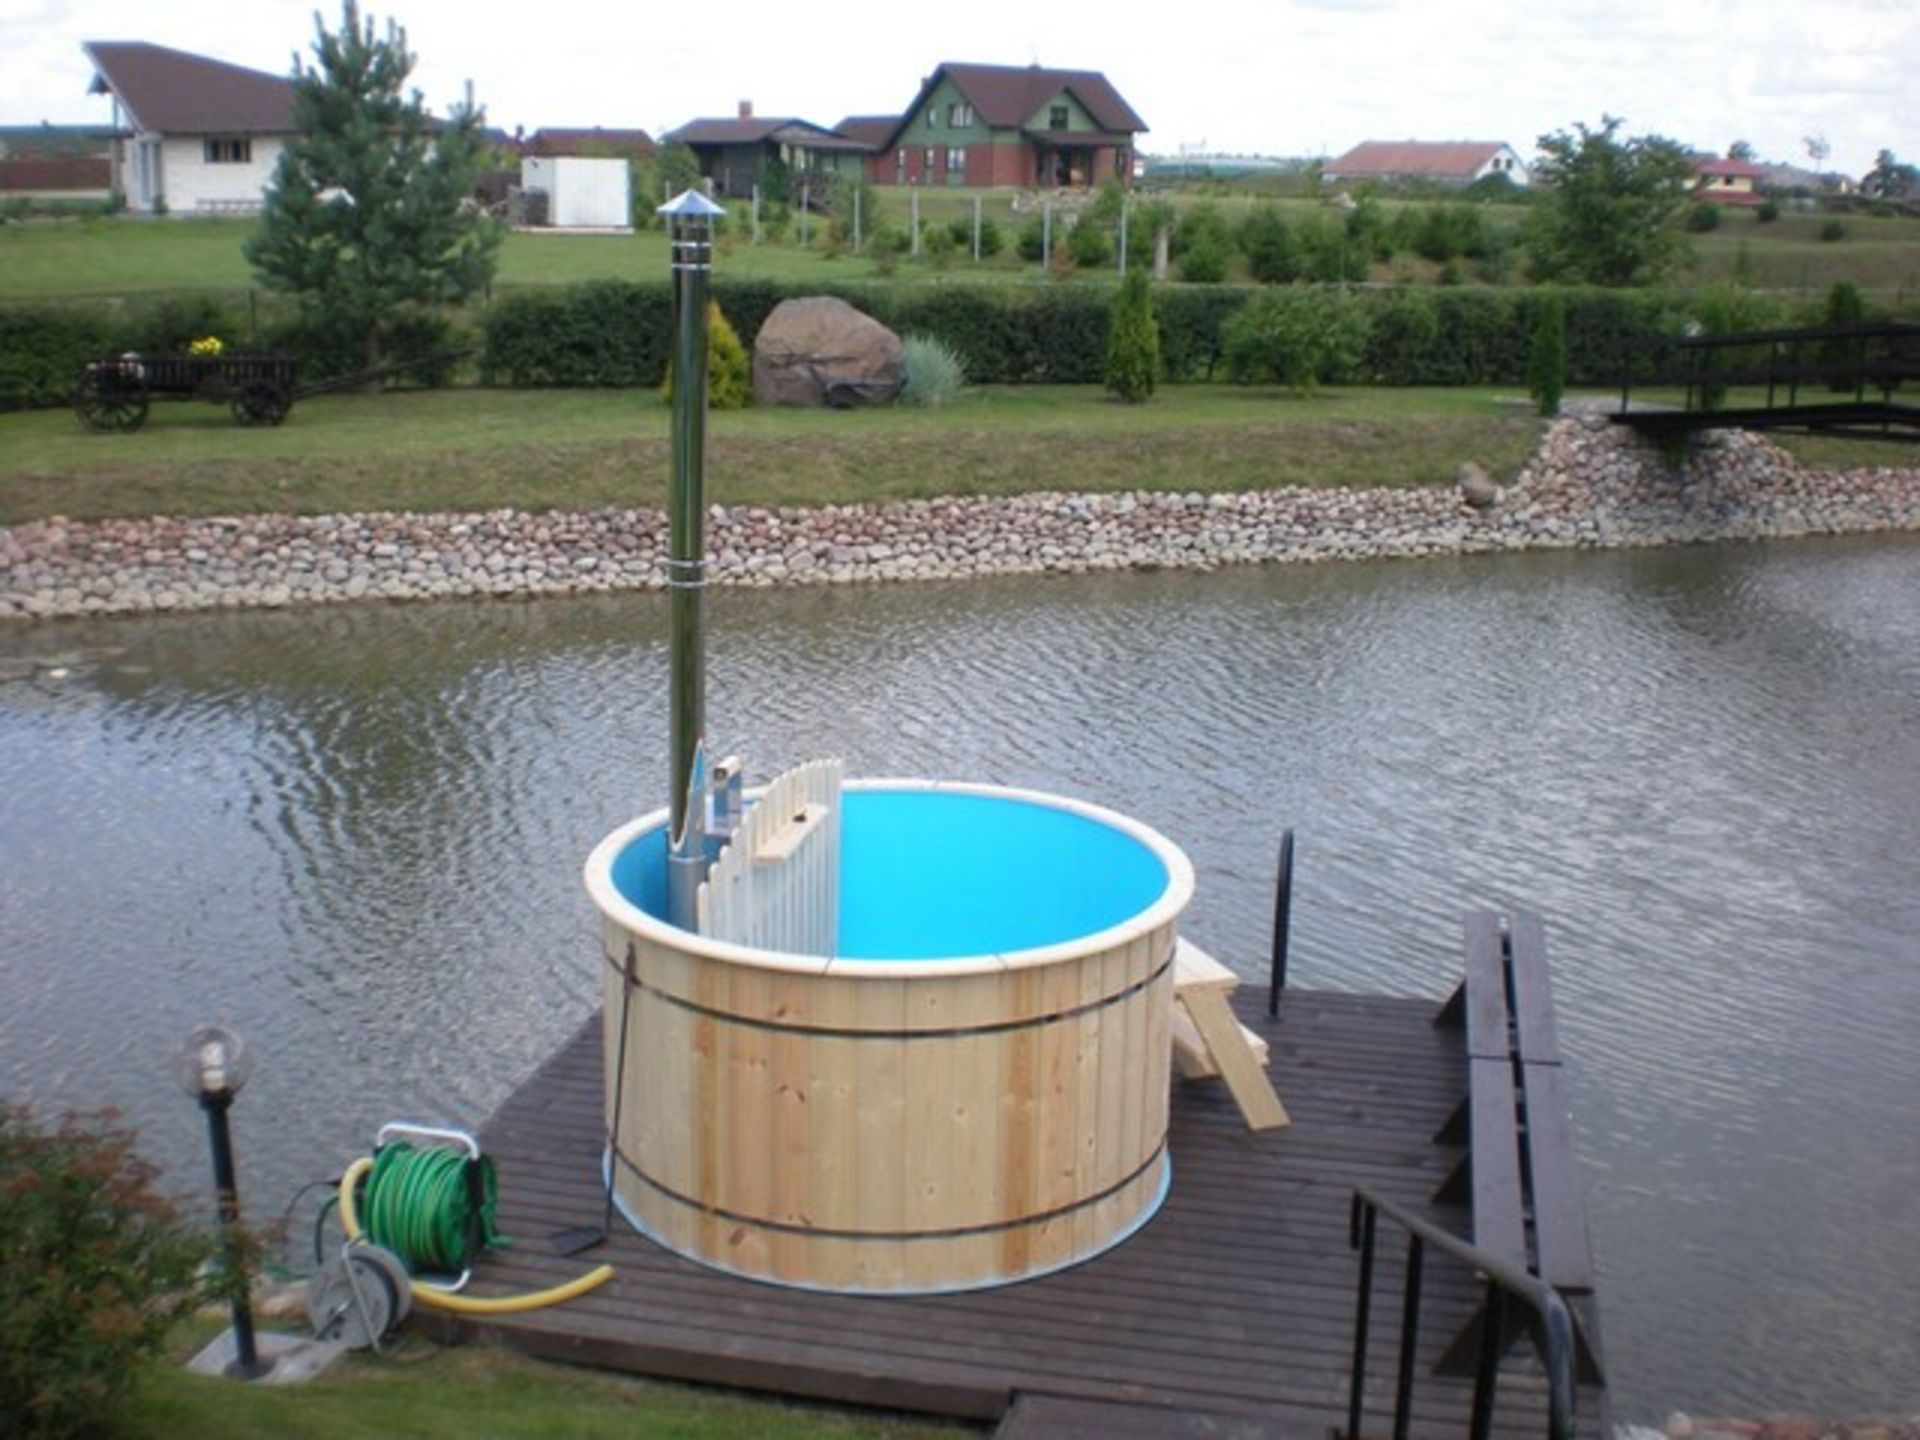 Lot 18047 - V Brand New 1.5m Polypropylene Hot Tub with Wooden Finishing and Stainless Steel Heater with Chimney